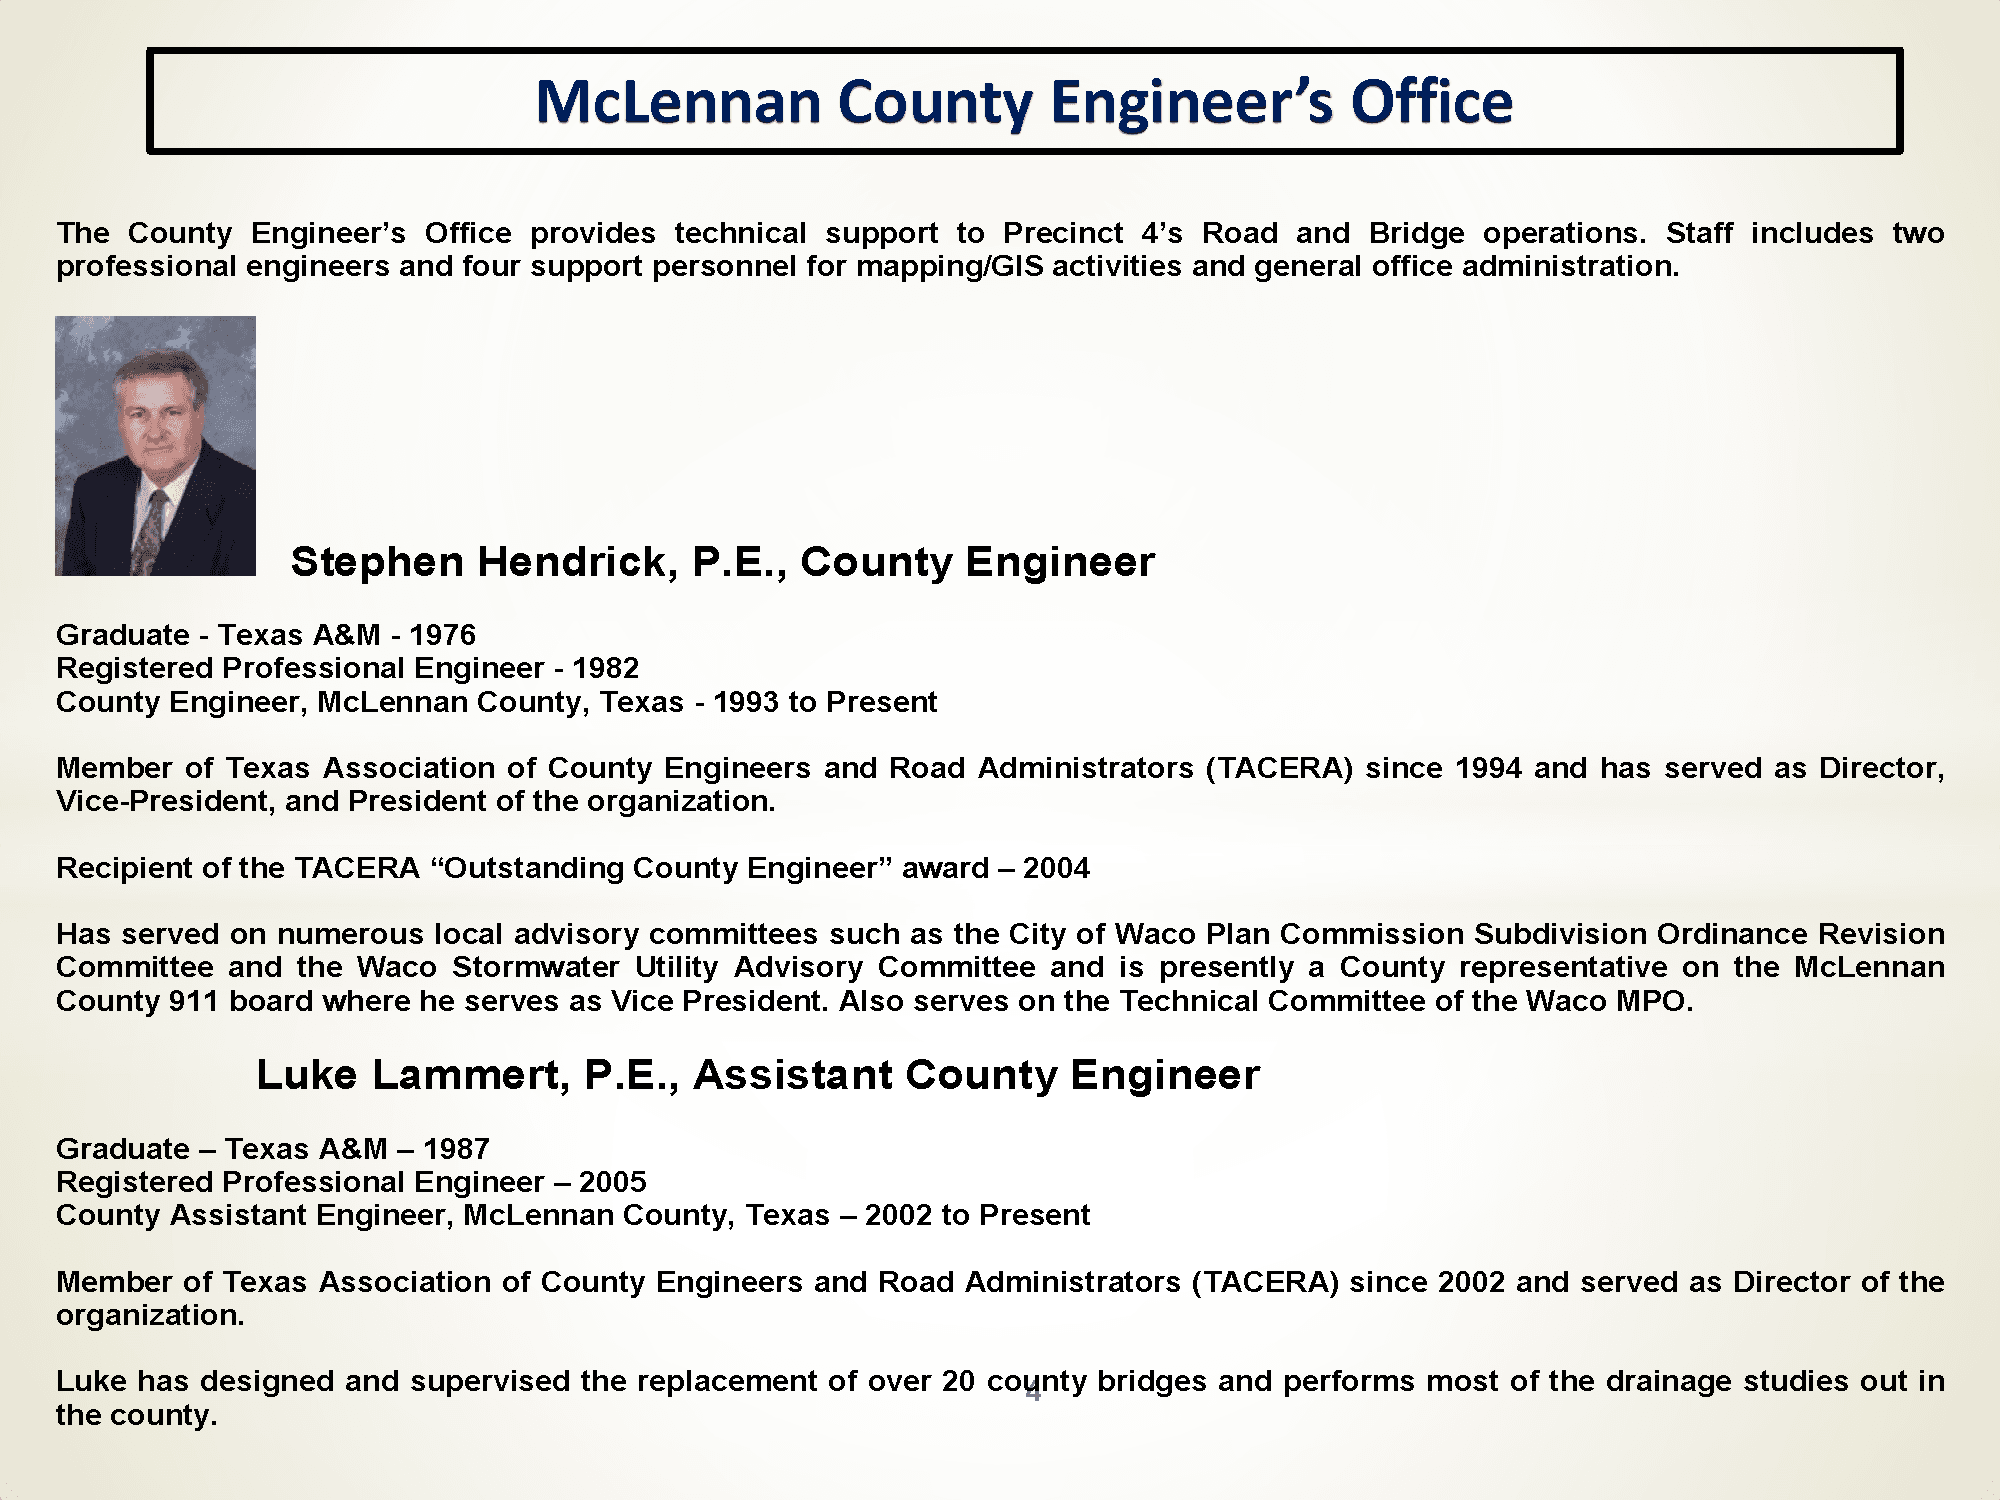 McLennan County Engineer's Office Information and Bio Picture